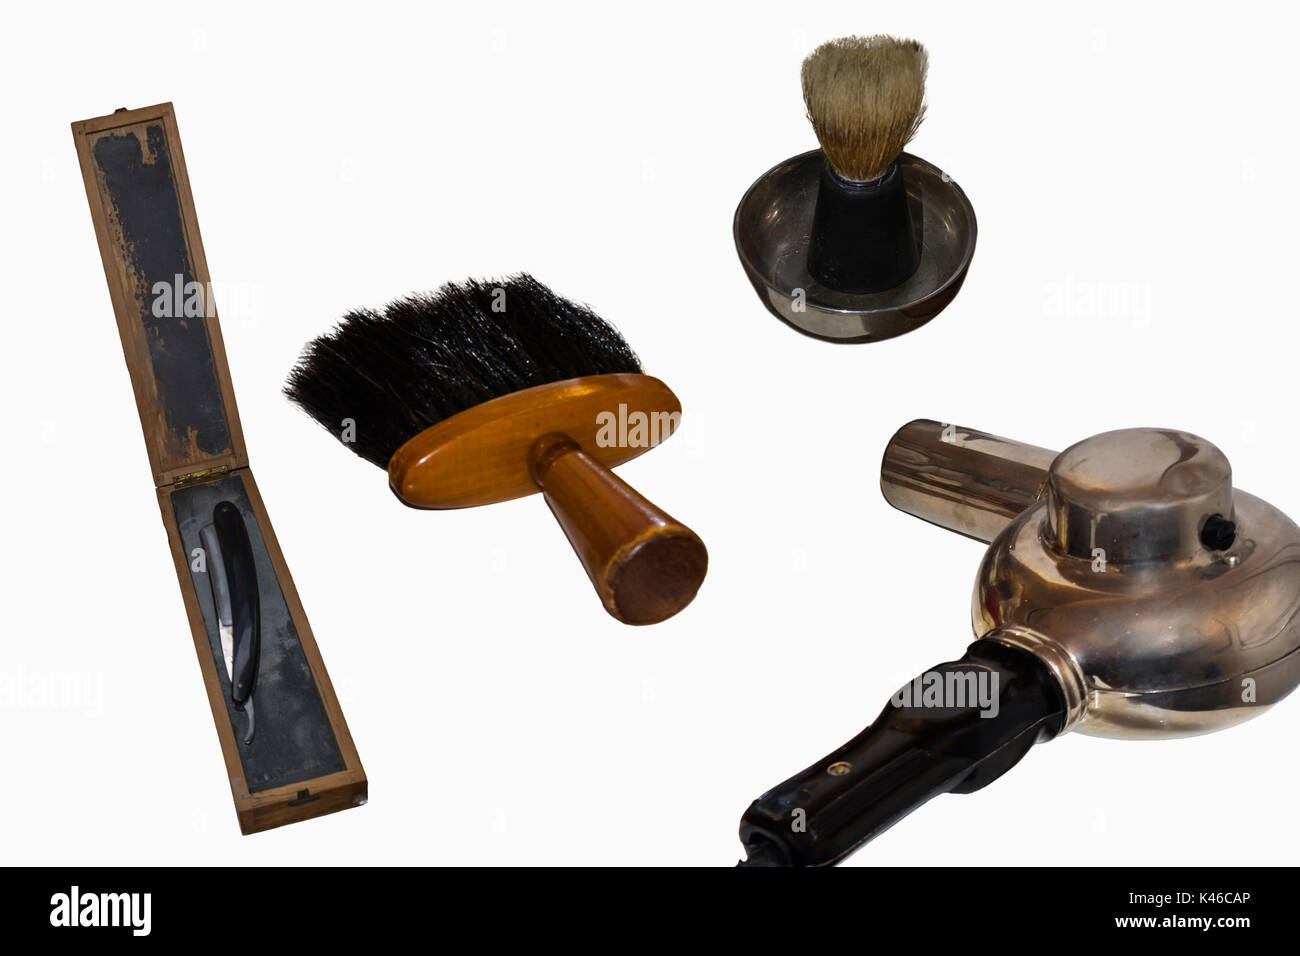 Old professional hairdressing tool and accessories - Stock Image